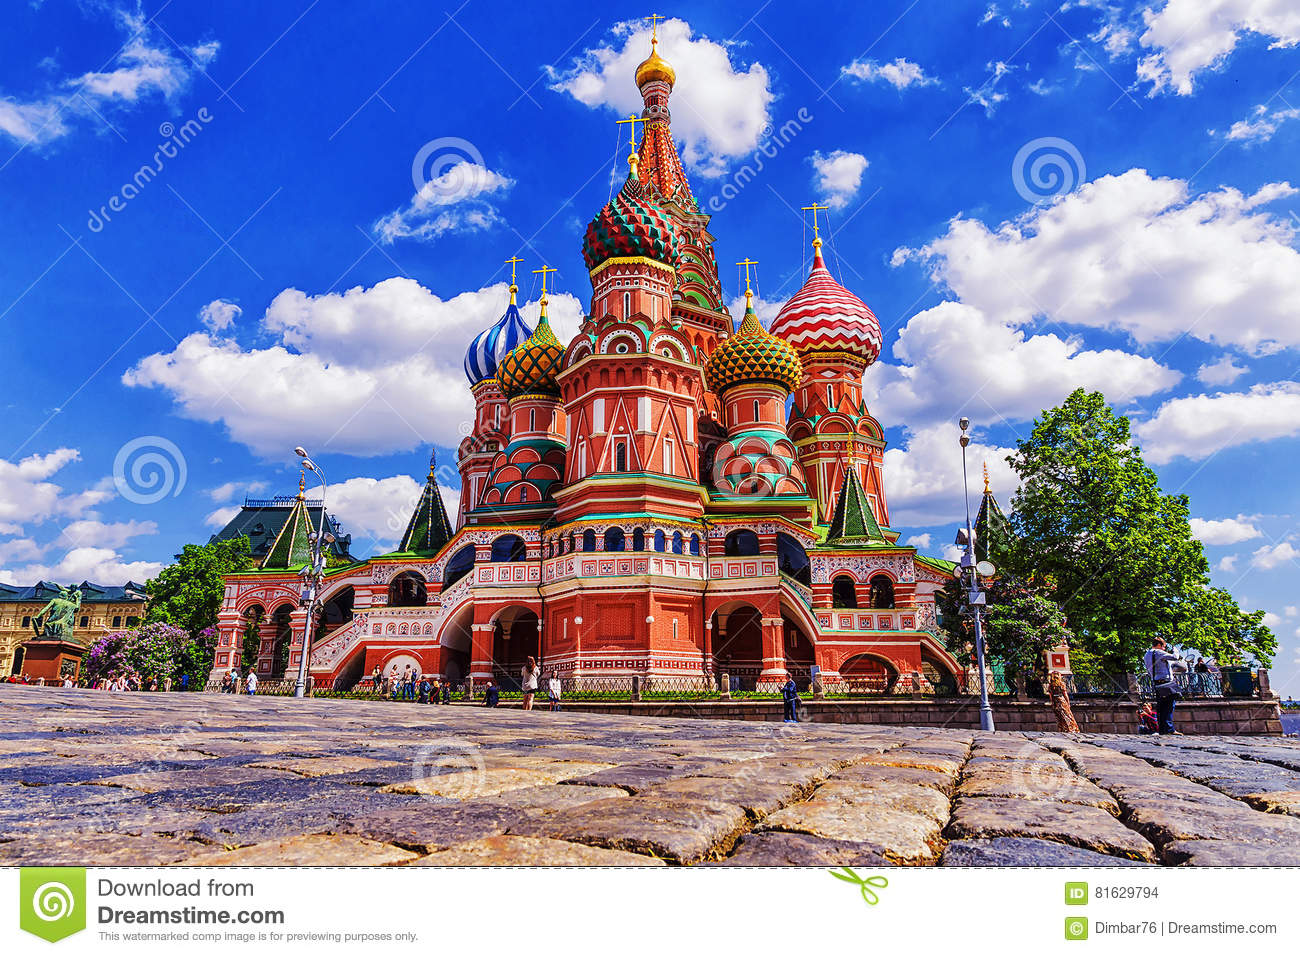 St Basil& x27; s Kathedraal in Moskou, Rusland